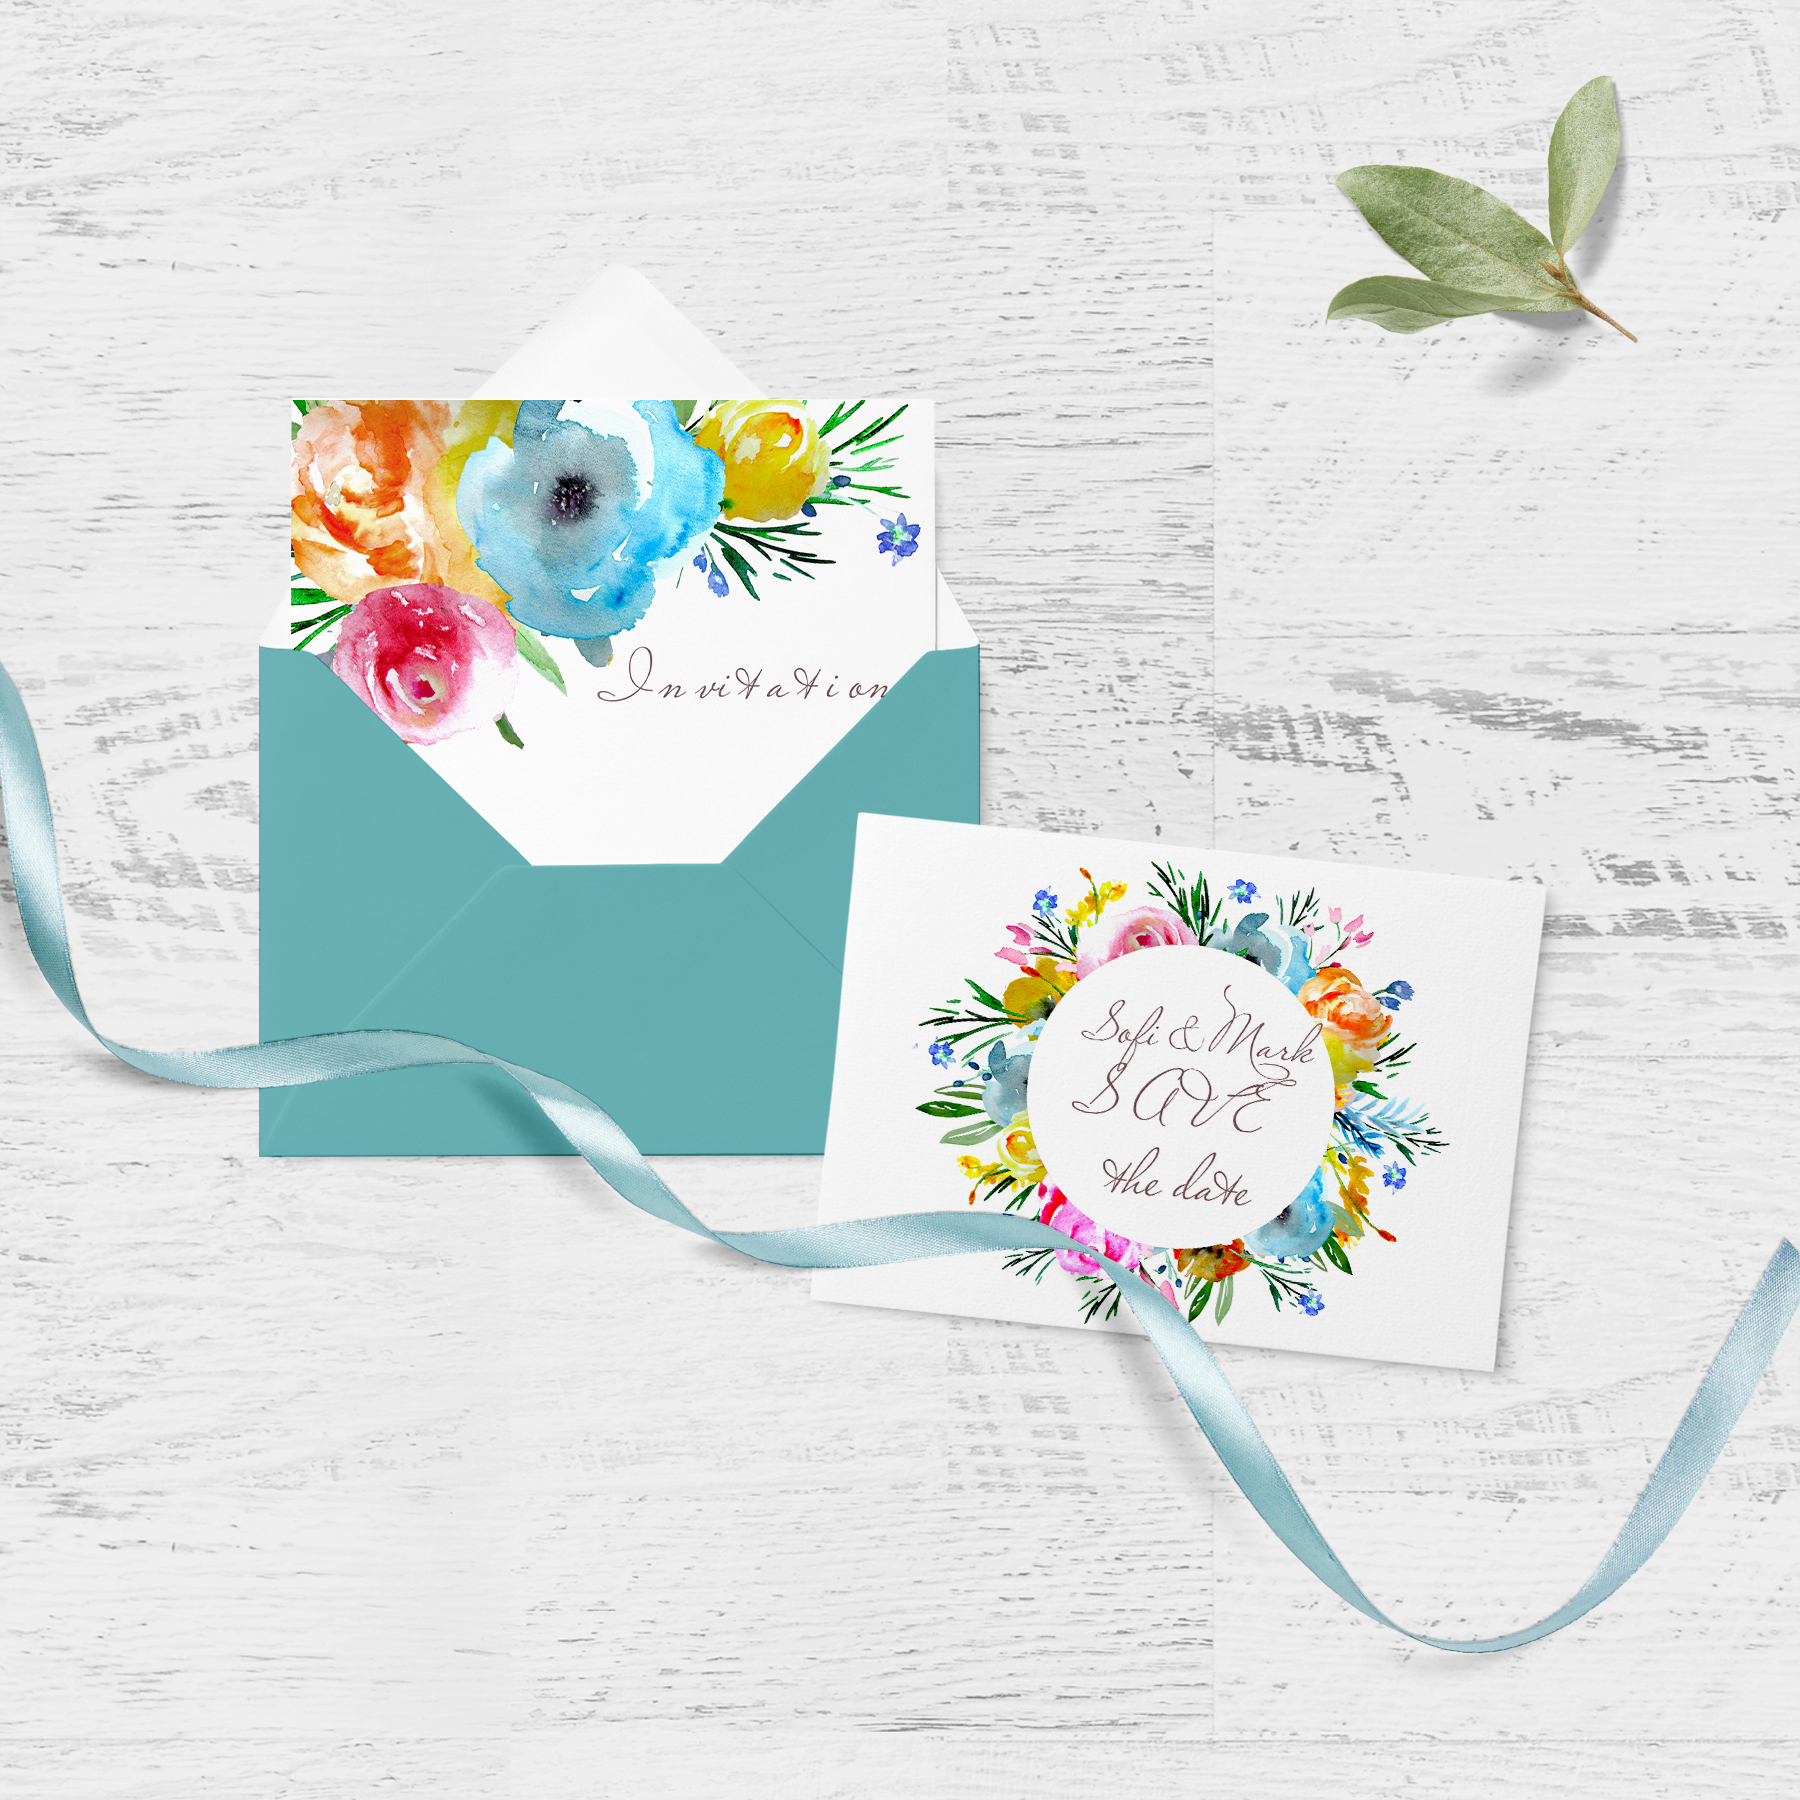 Brigt flowers watercolor clipart sprig floral desin cards example image 3